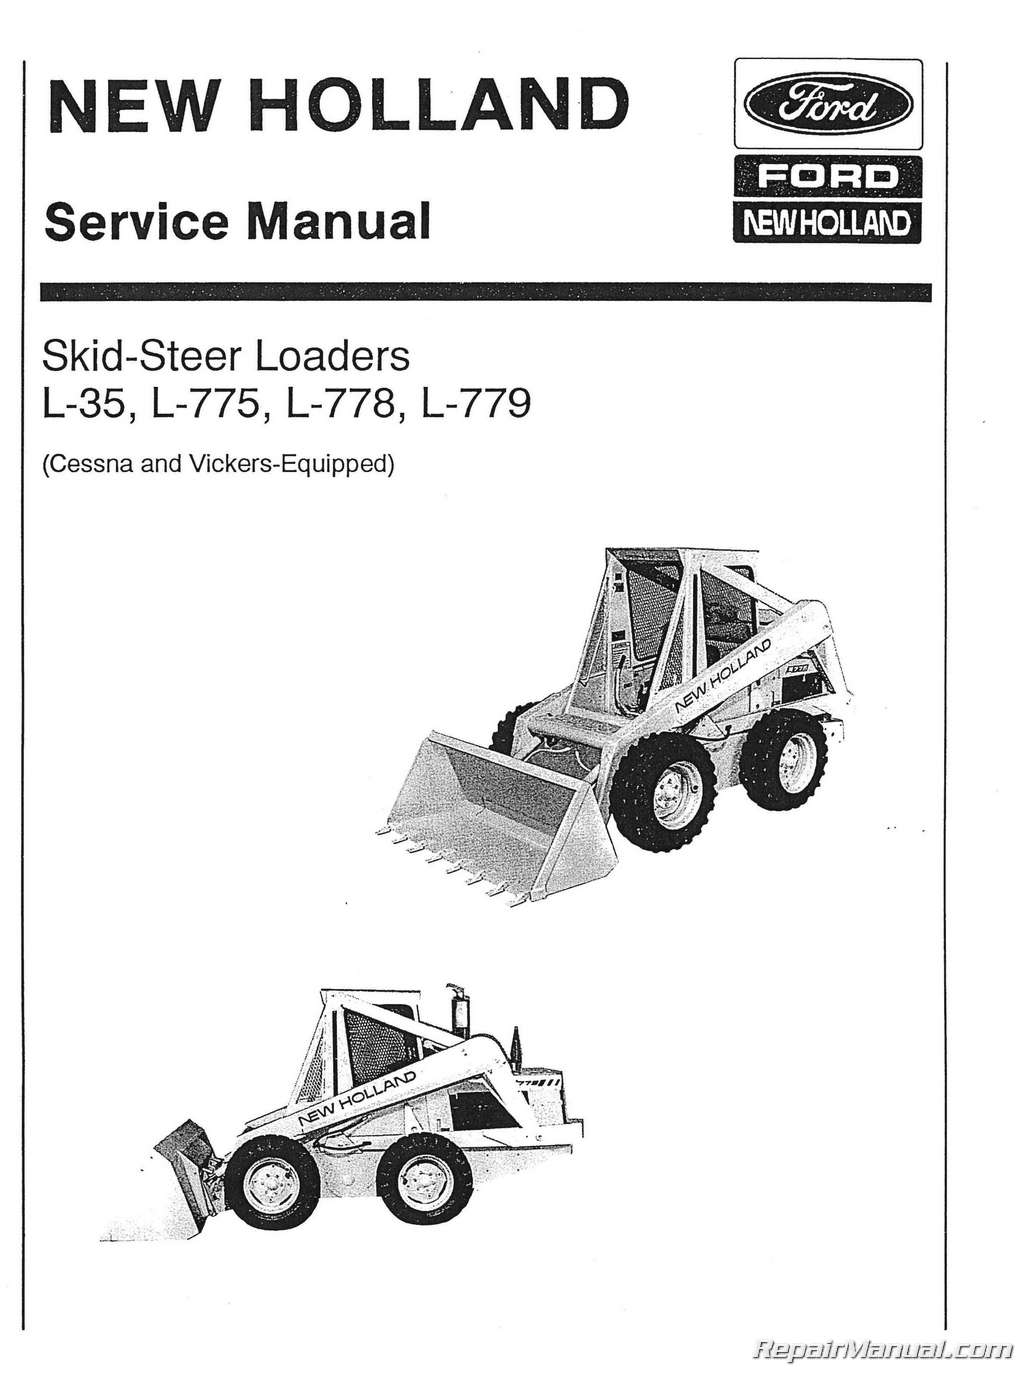 Ford New Holland L35 L775 L778 L779 Skid Steer Service Manual